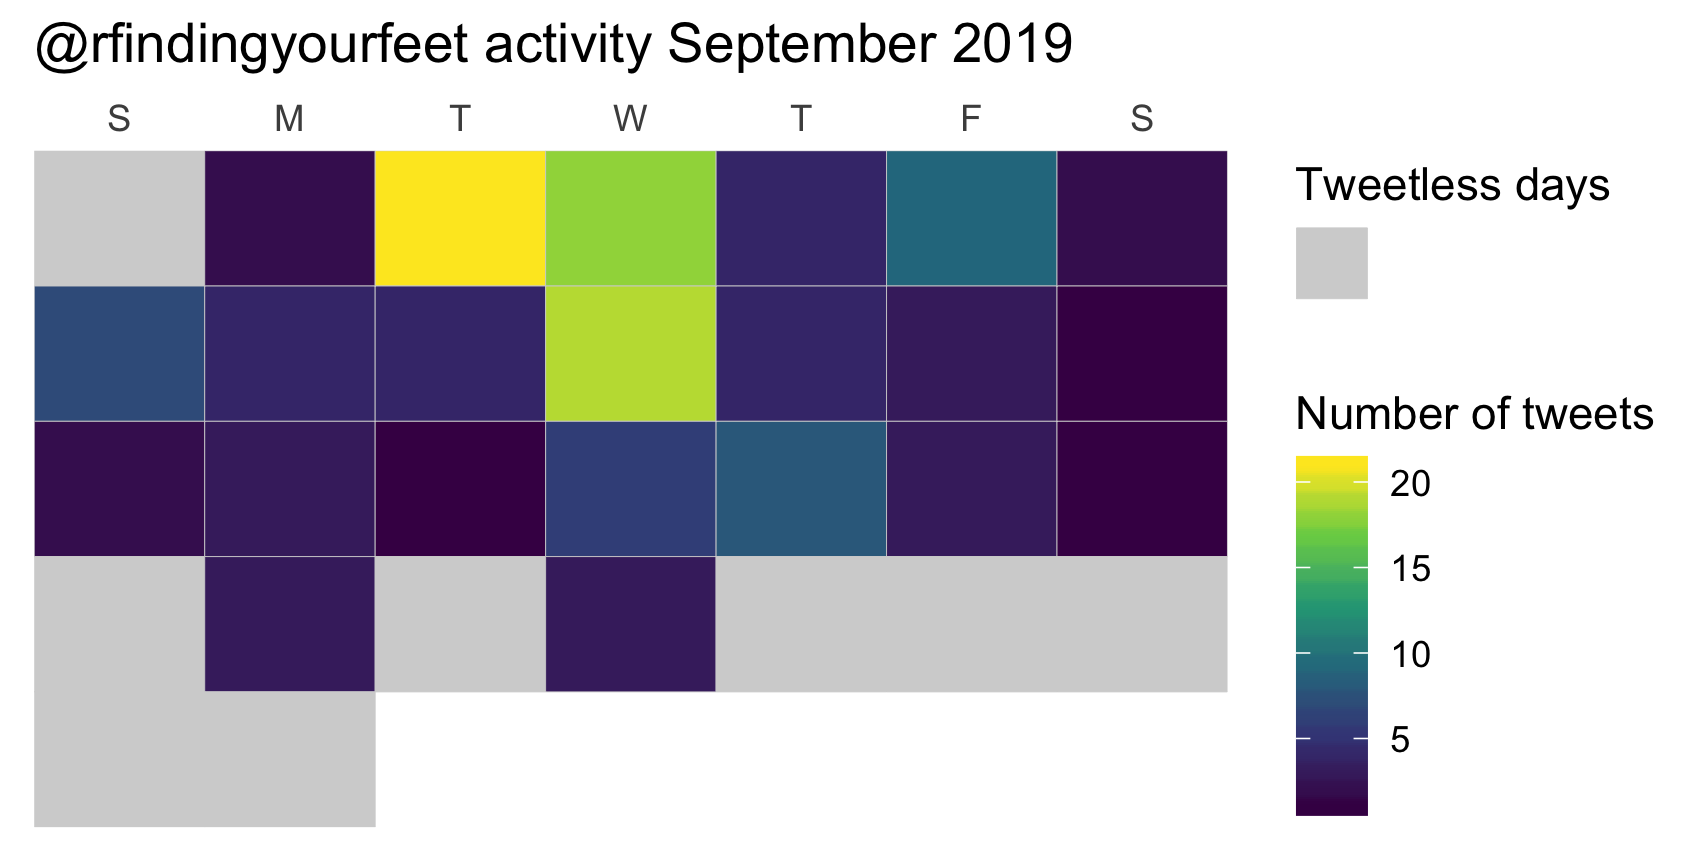 Things we learned in September 2019